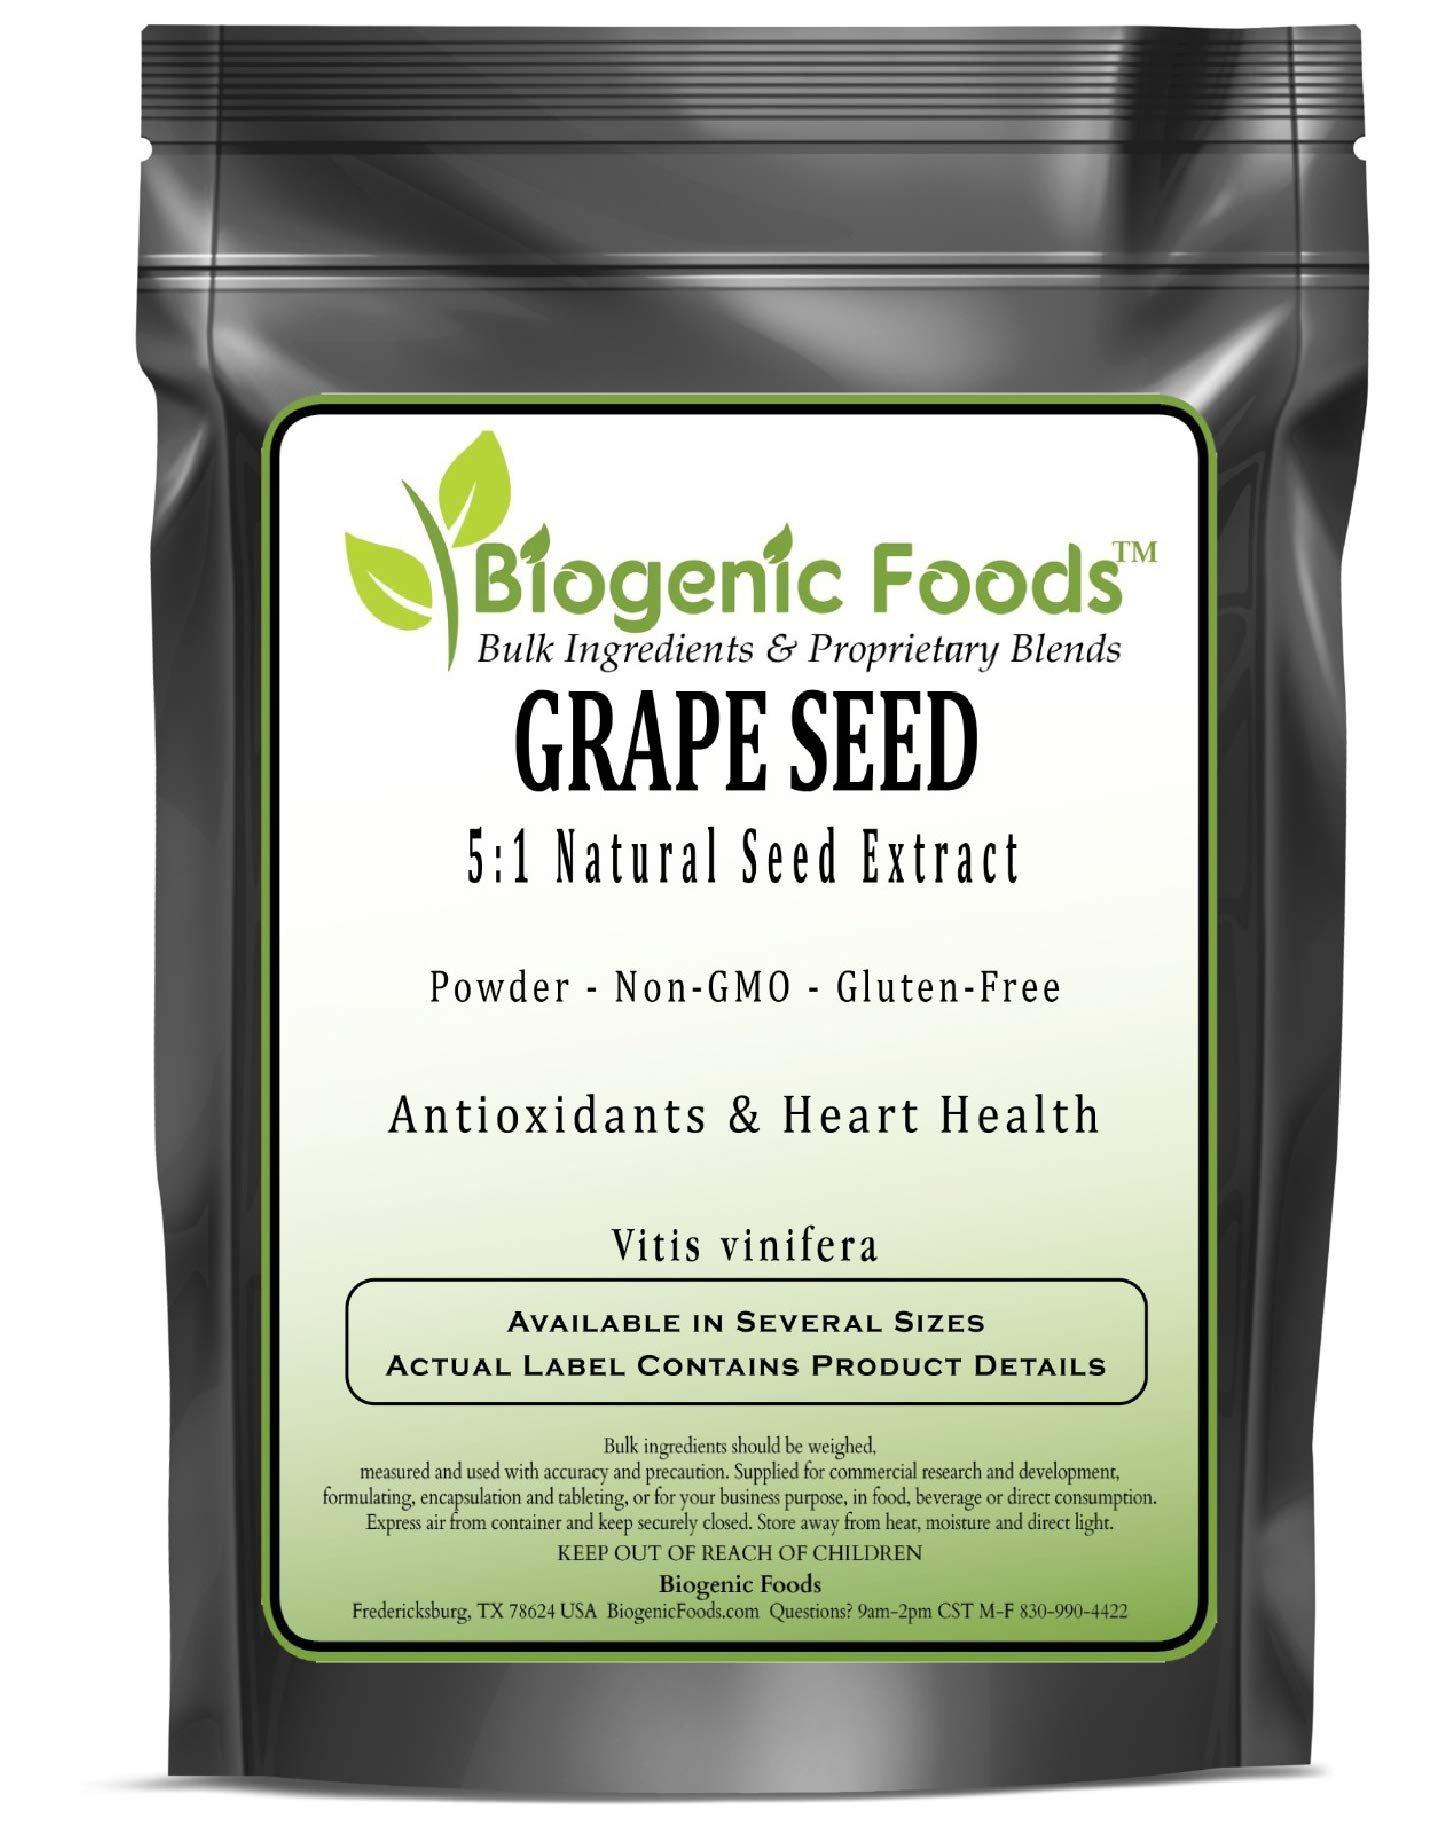 Grape Seed - 5:1 Natural Seed Powder Extract (VIT is vinifera), 2 kg